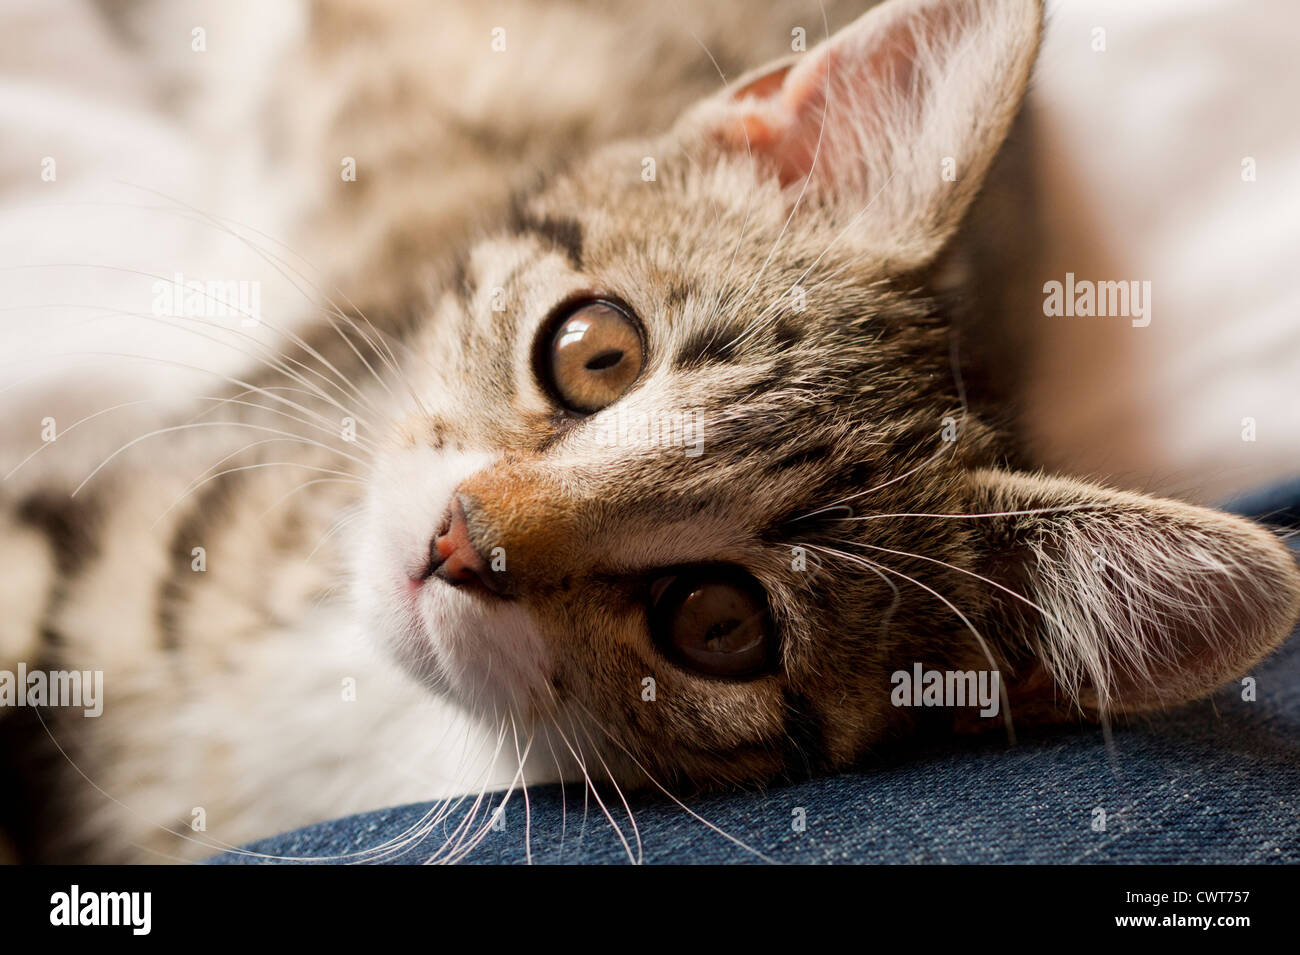 Kitten relaxing and looking thoughtfull - Stock Image